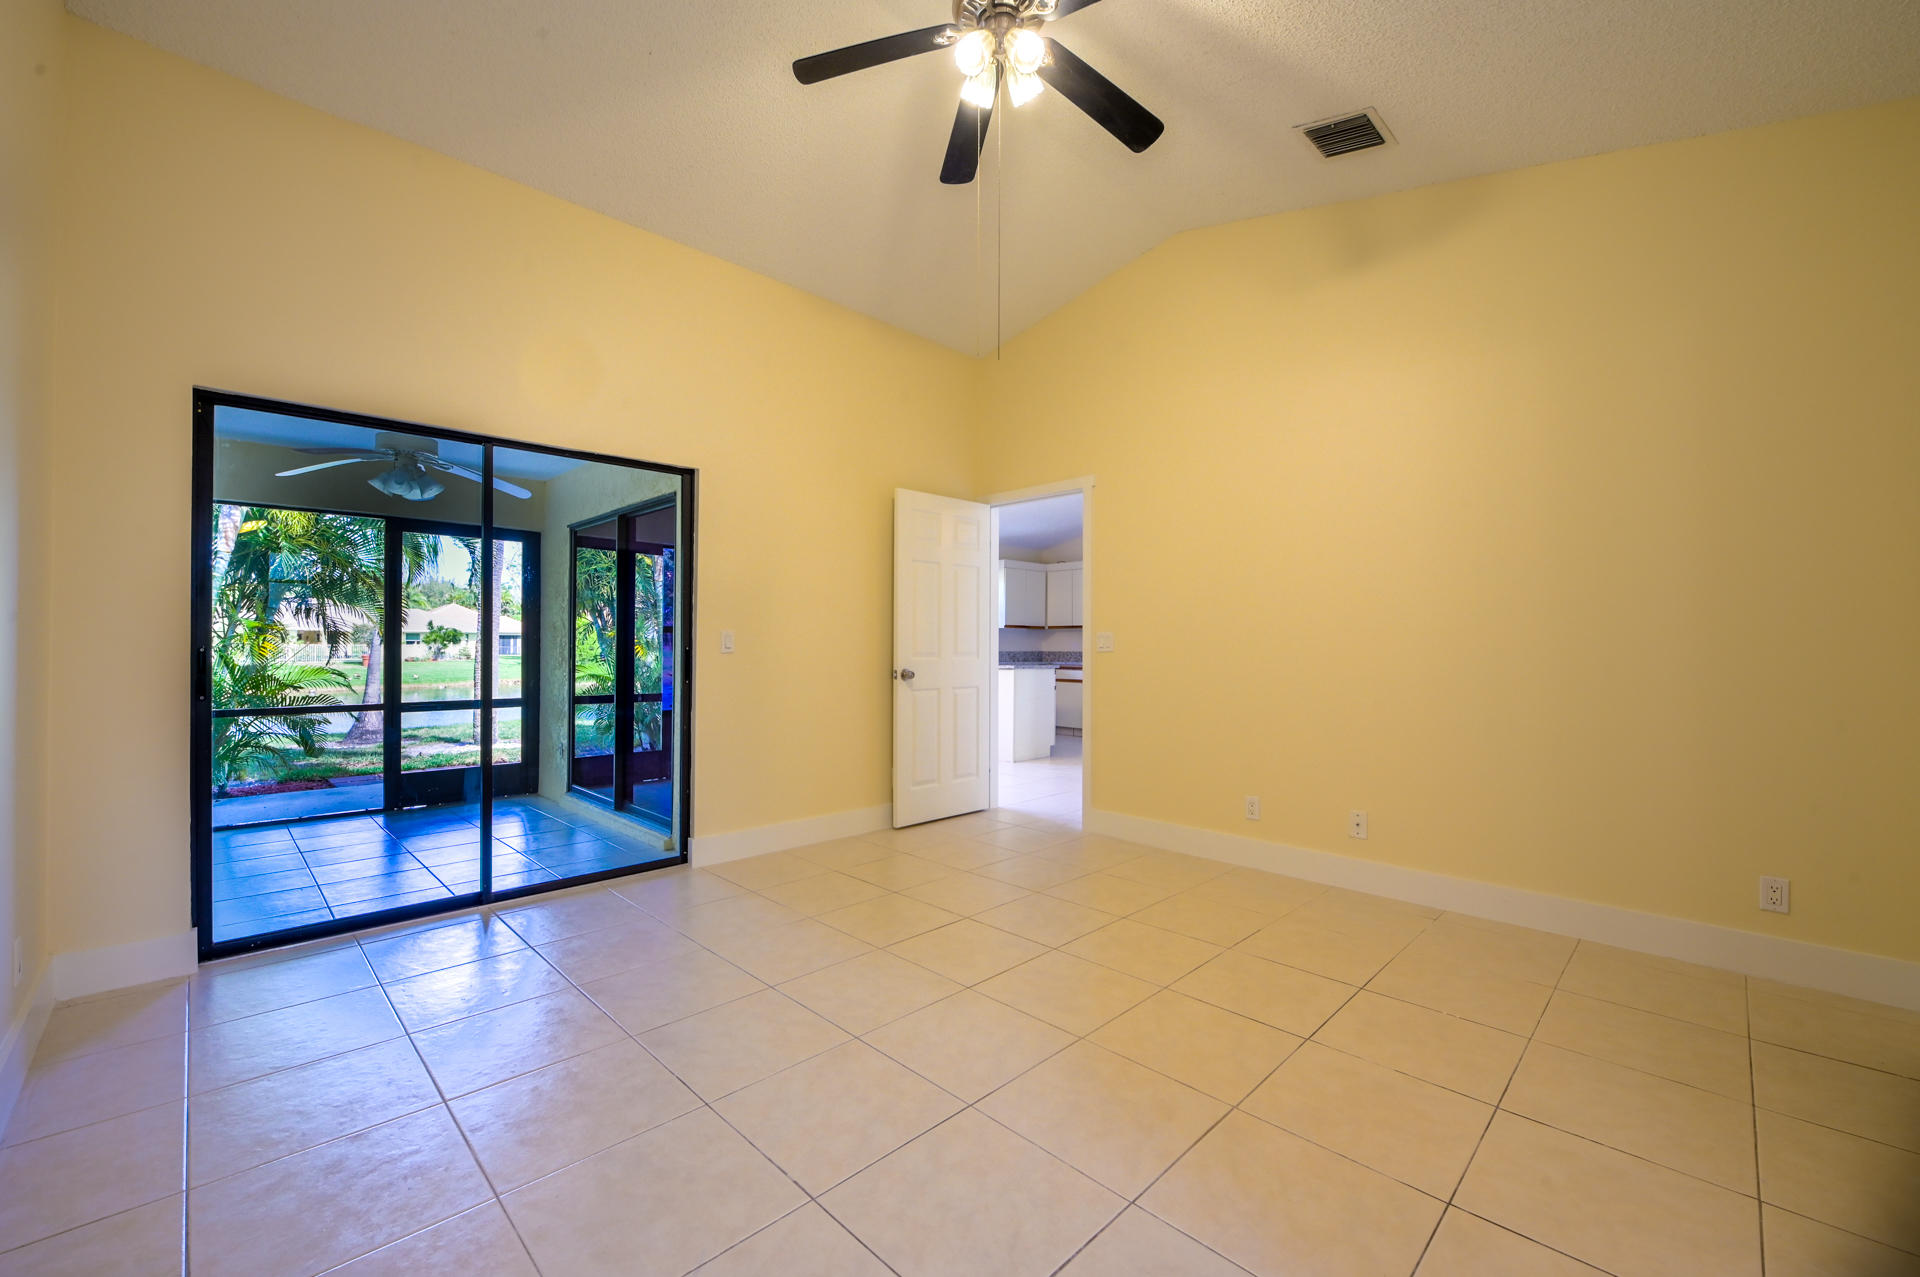 71 Via De Casas Norte Boynton Beach, FL 33426 small photo 11